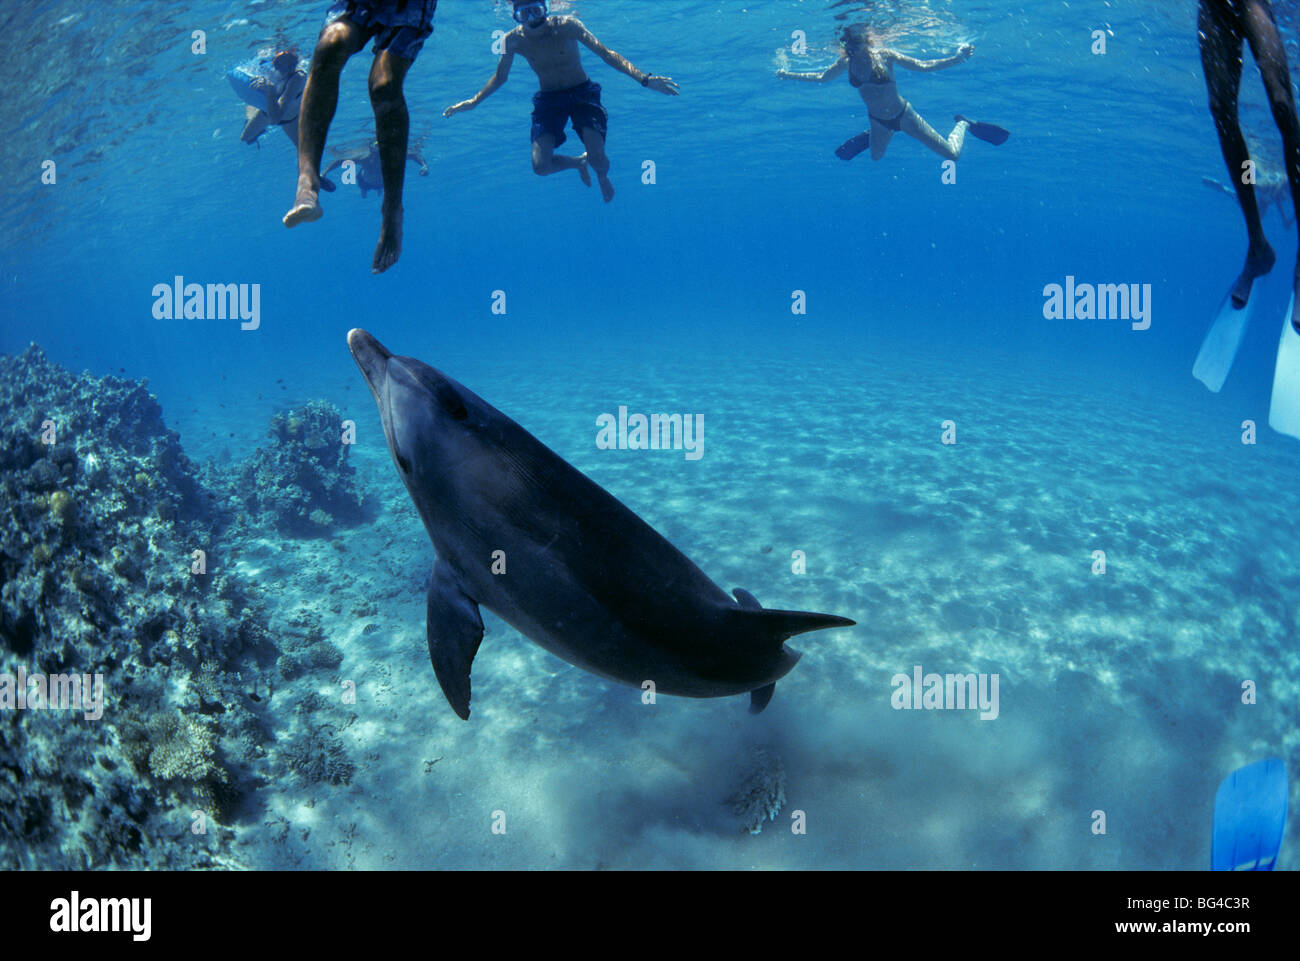 Swimming with wild Bottlenose Dolphin (Tursiops truncatus), Nuweiba, Egypt - Red Sea. - Stock Image